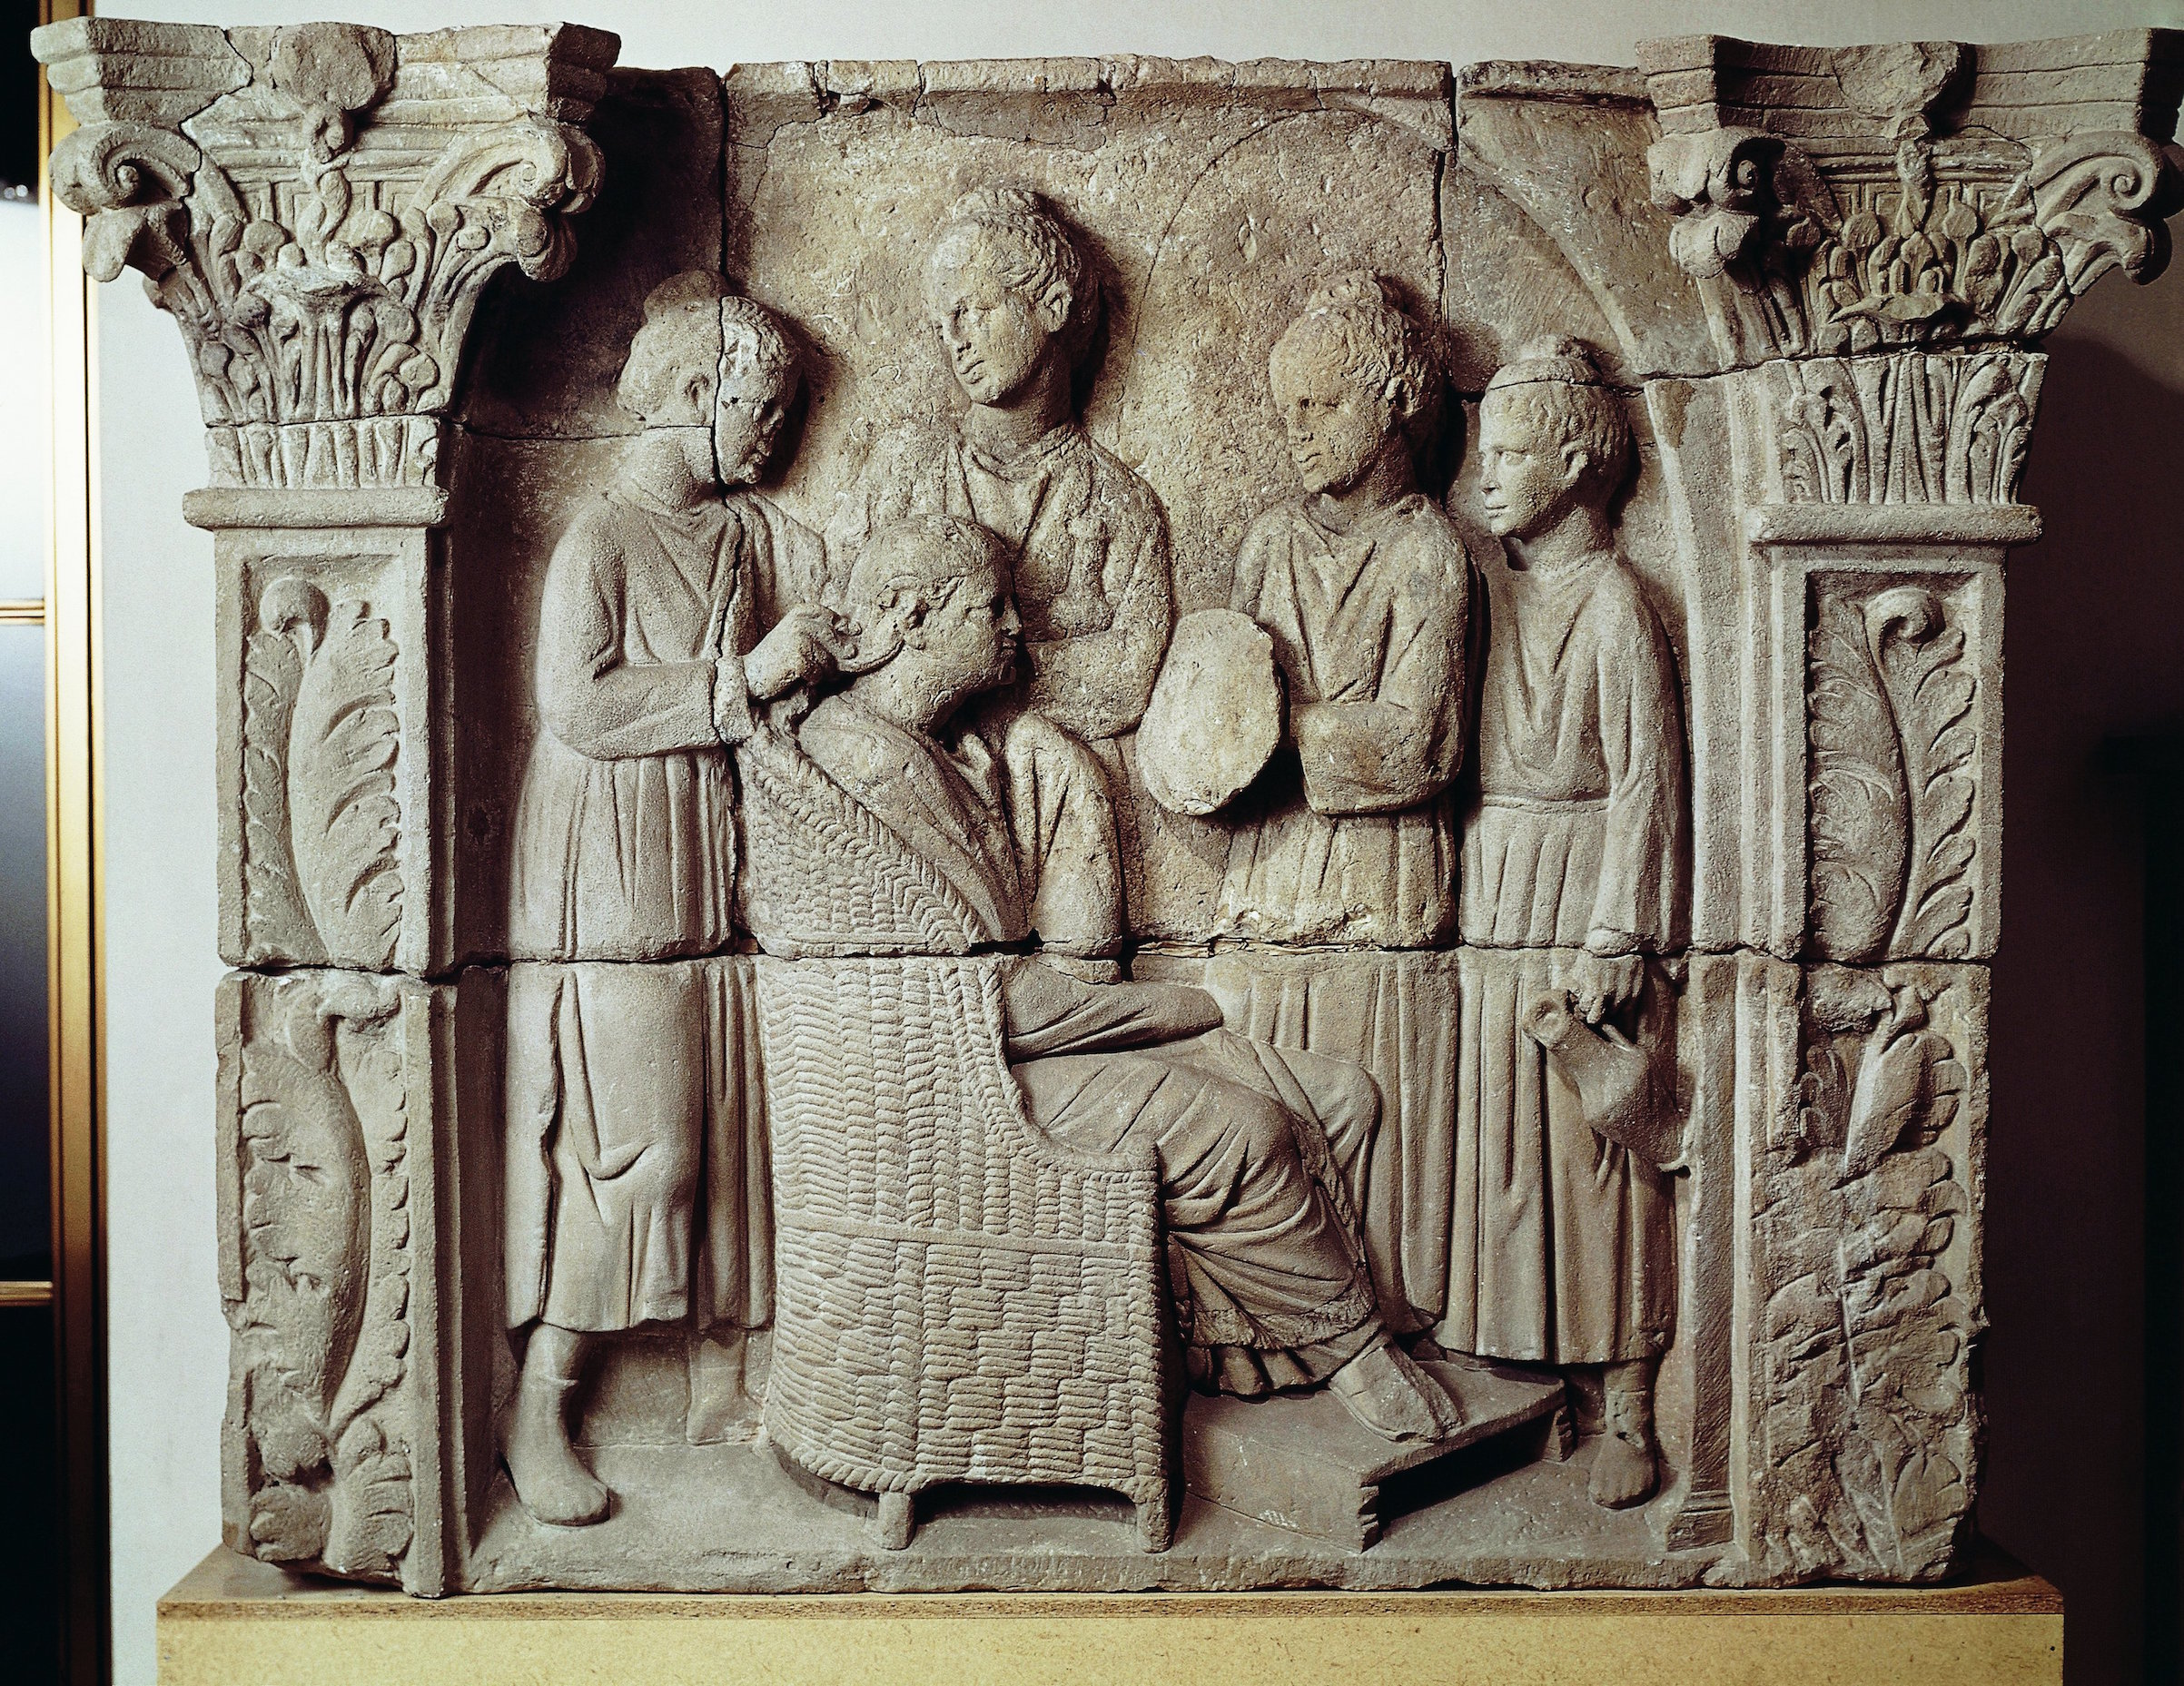 Second century A.D. Roman relief portraying a lady having her hair styled. From Neumagen-Dhron, Germany.